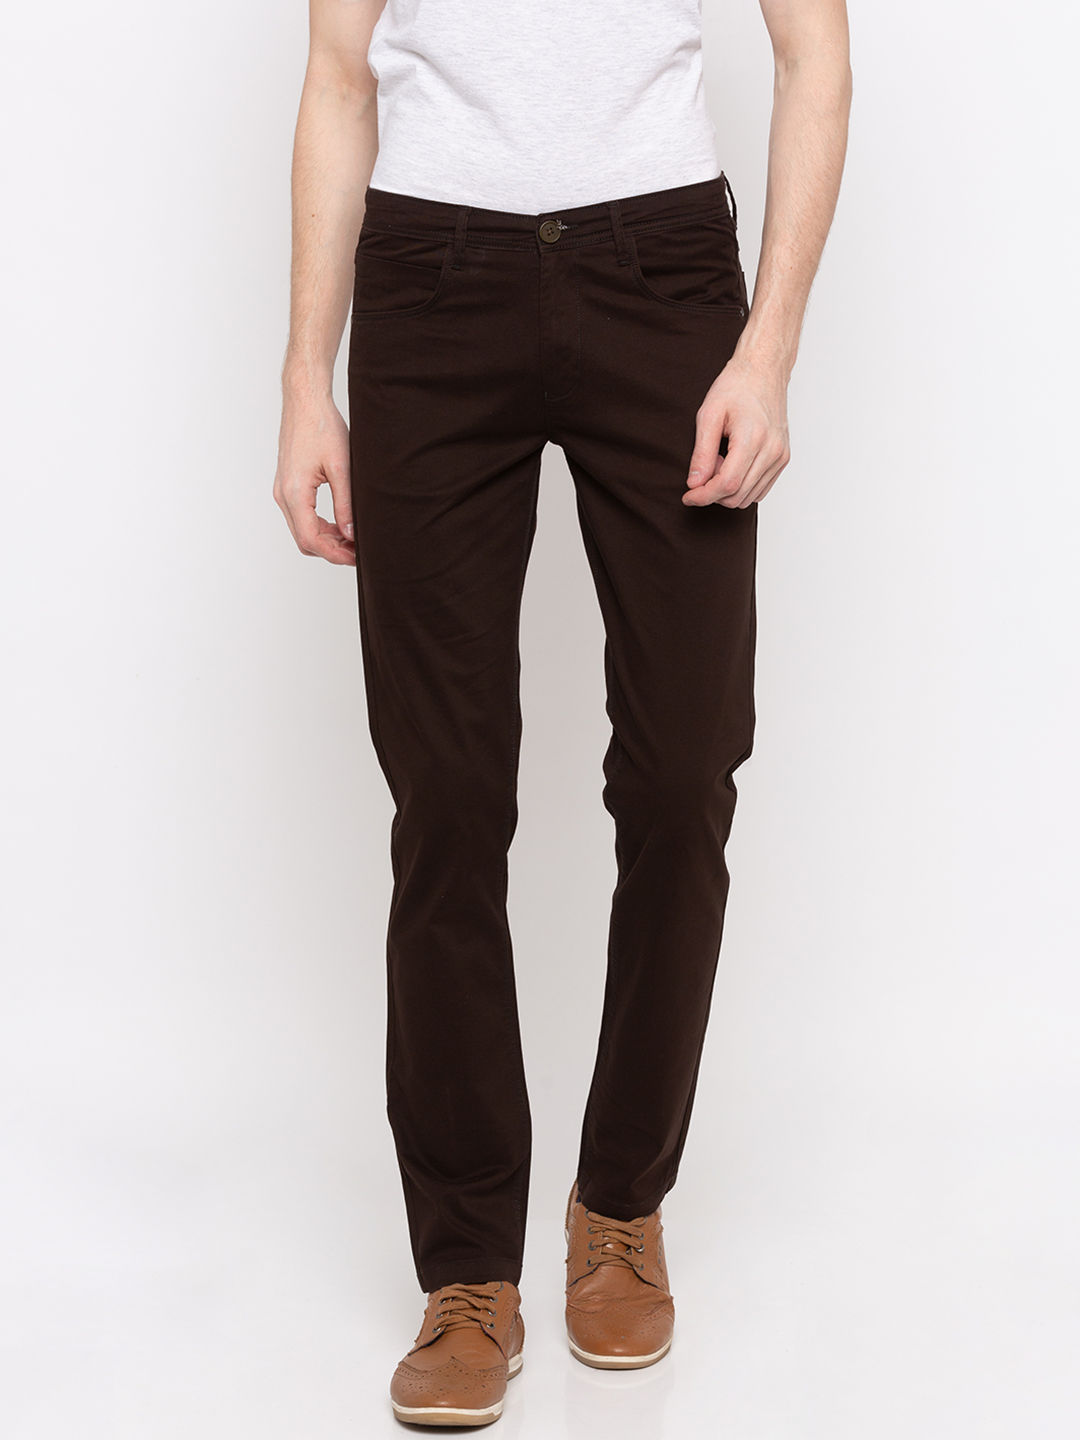 Chocolate Solid Slim Fit Chinos